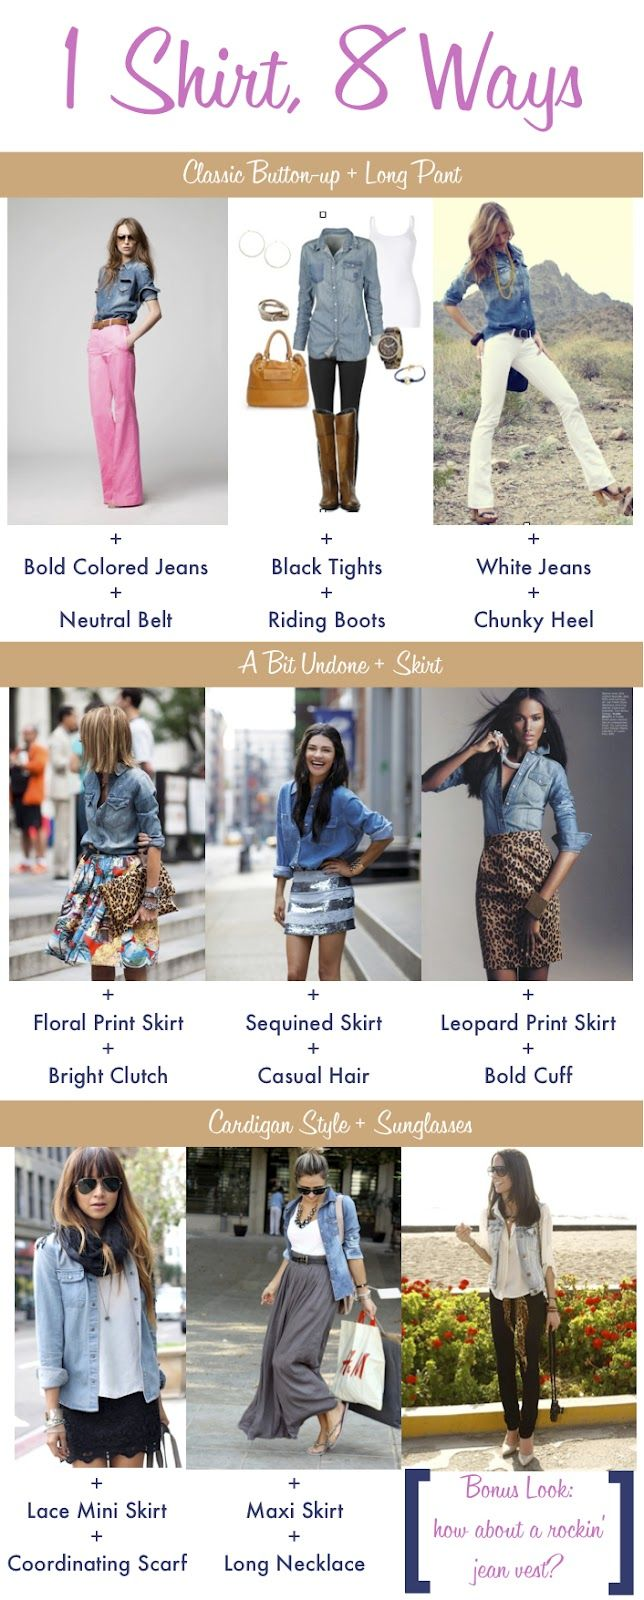 fd6d5860a5a18 the classic denim button up . 1 shirt, 8 ways | they.call.it.style ...